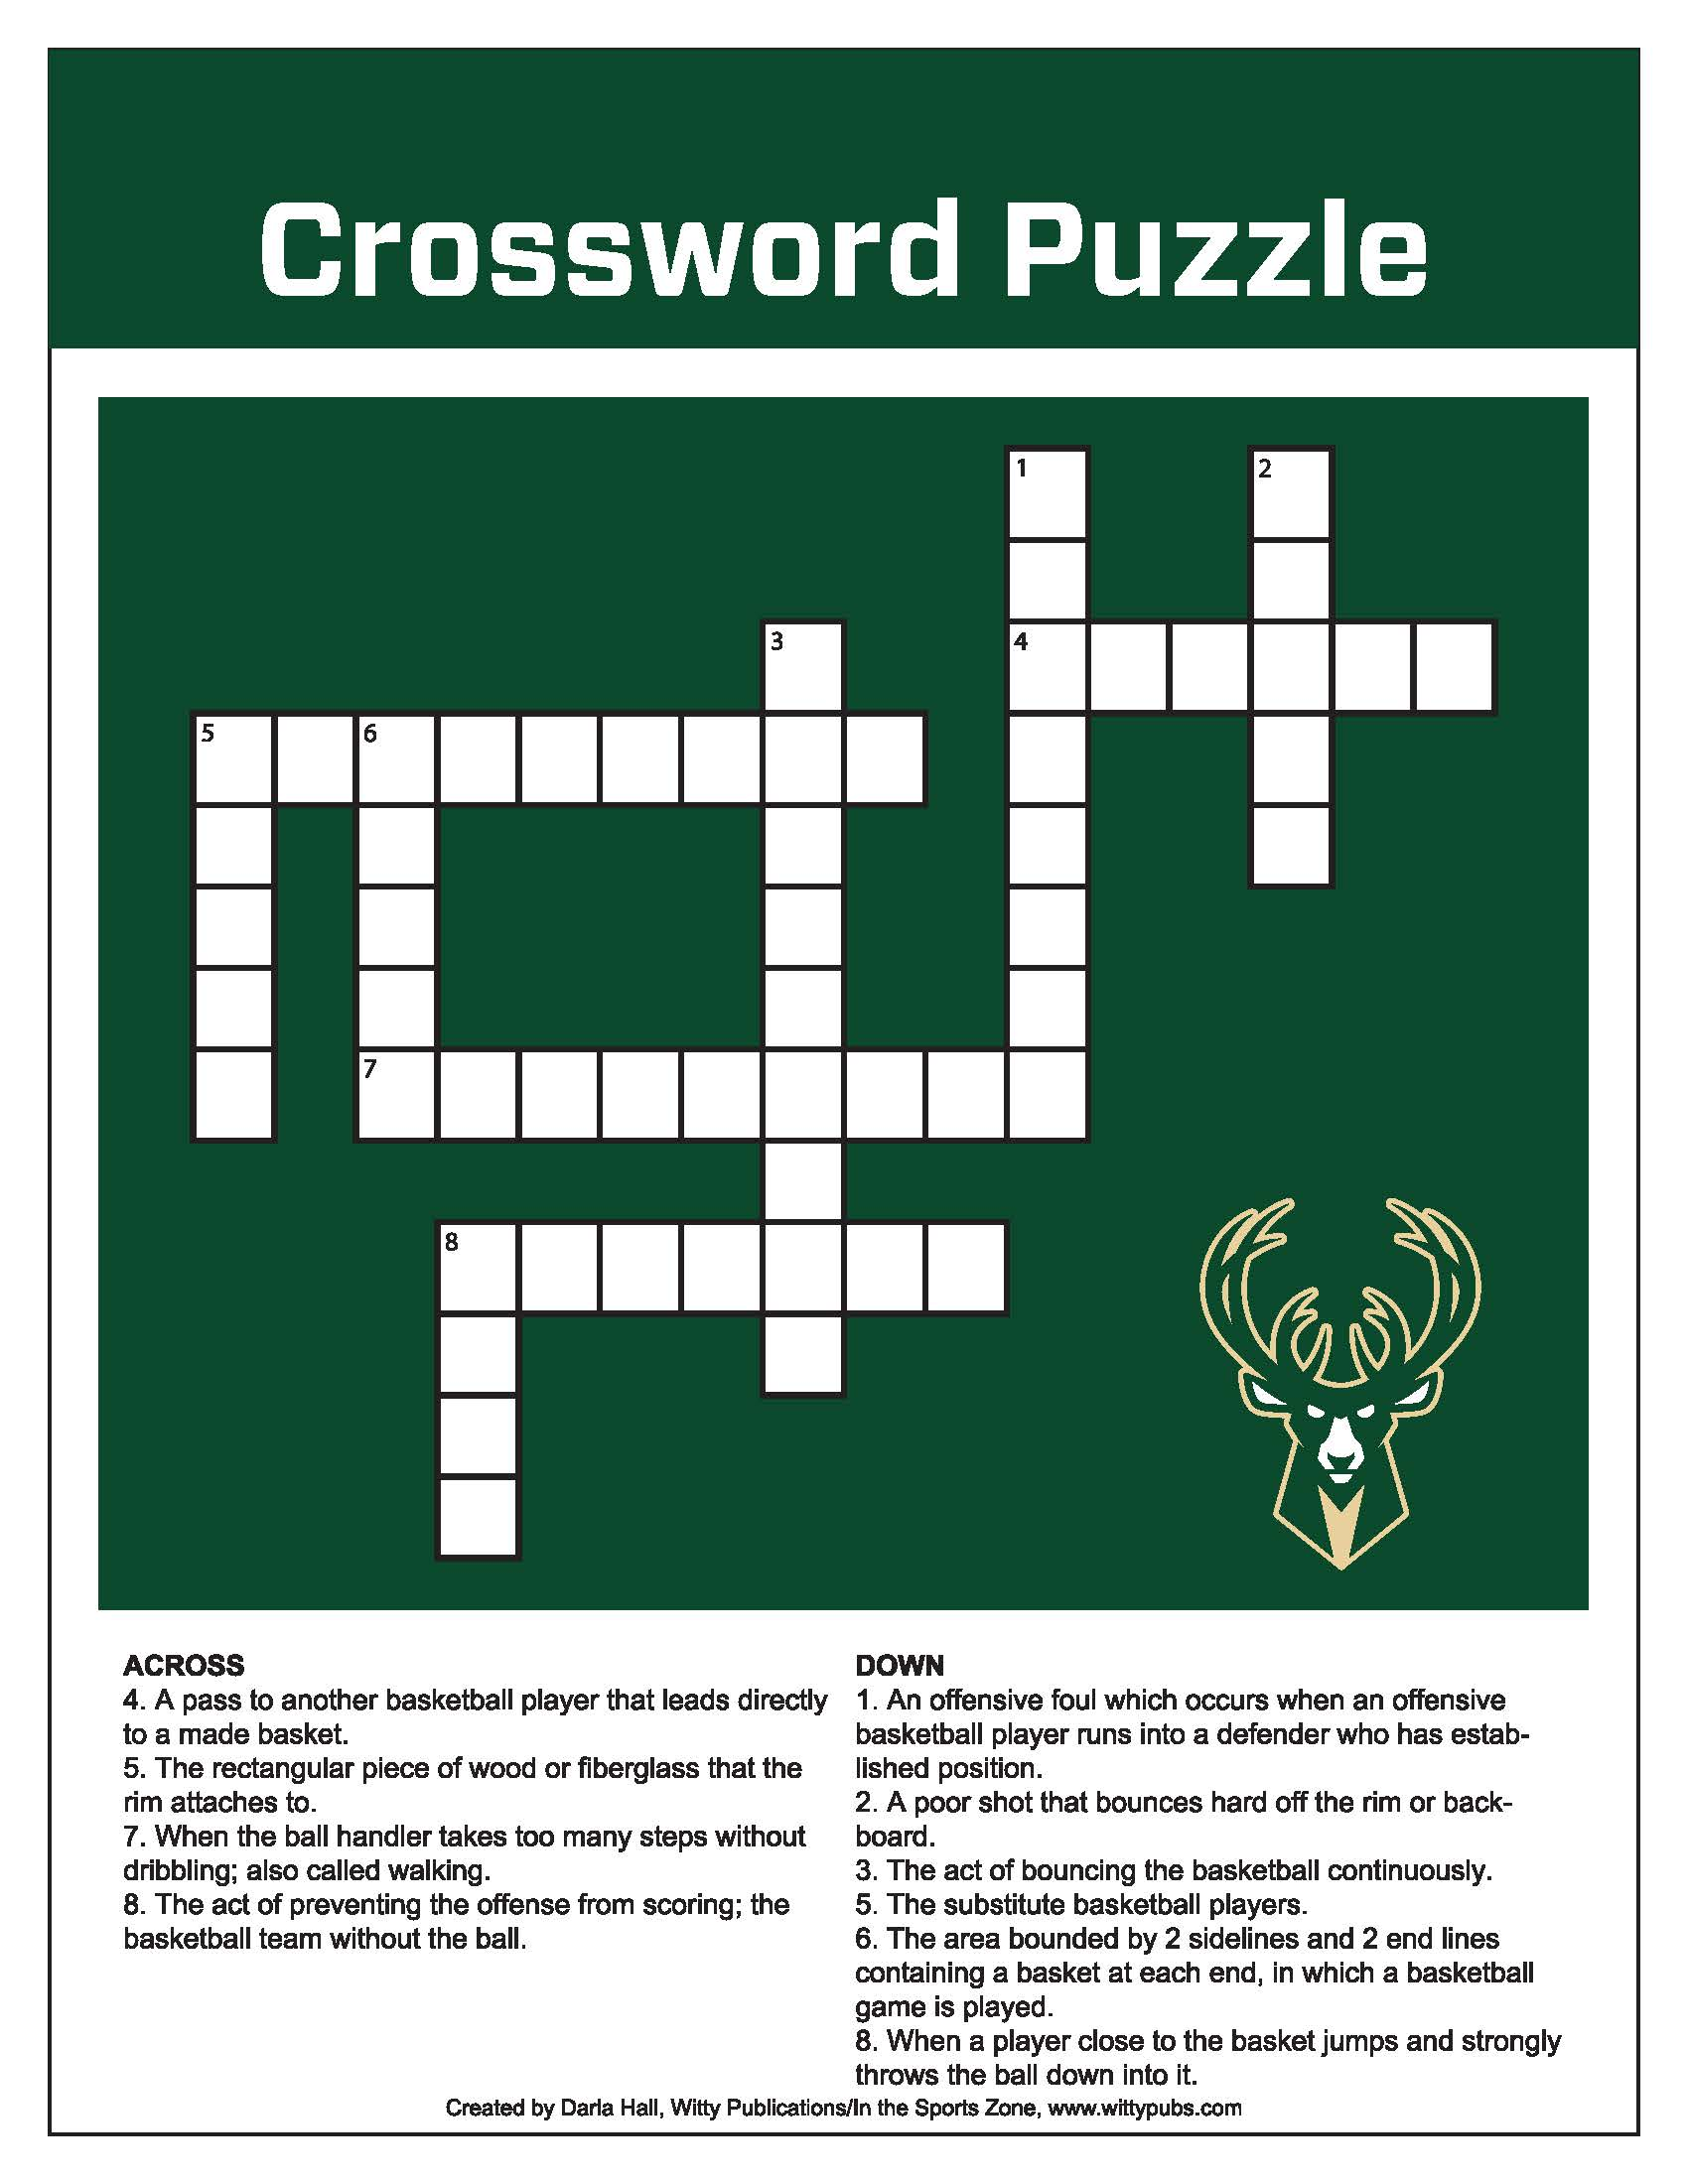 Bucks Kids Pages Crossword Puzzle